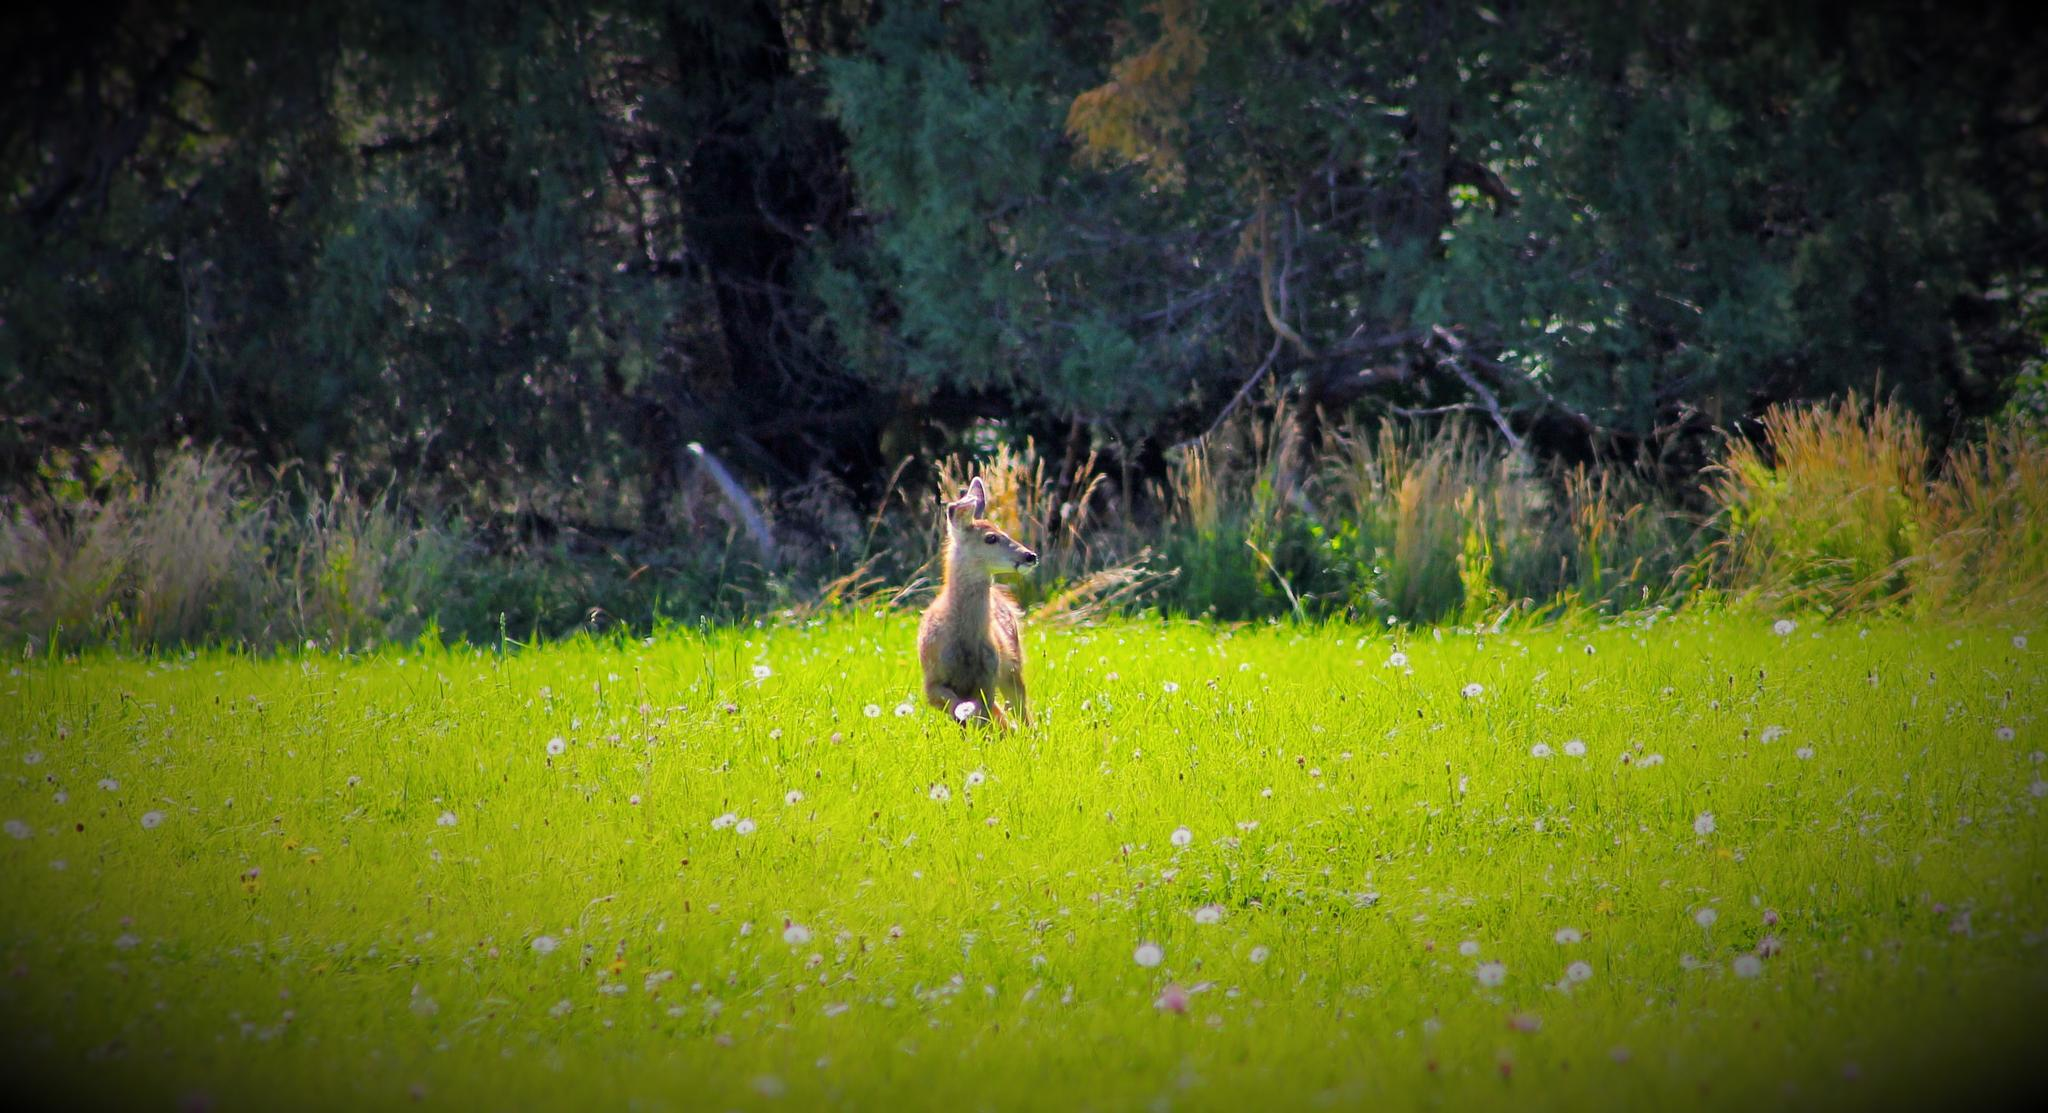 Baby Mulie and Dandelions by Birdd's Eye View